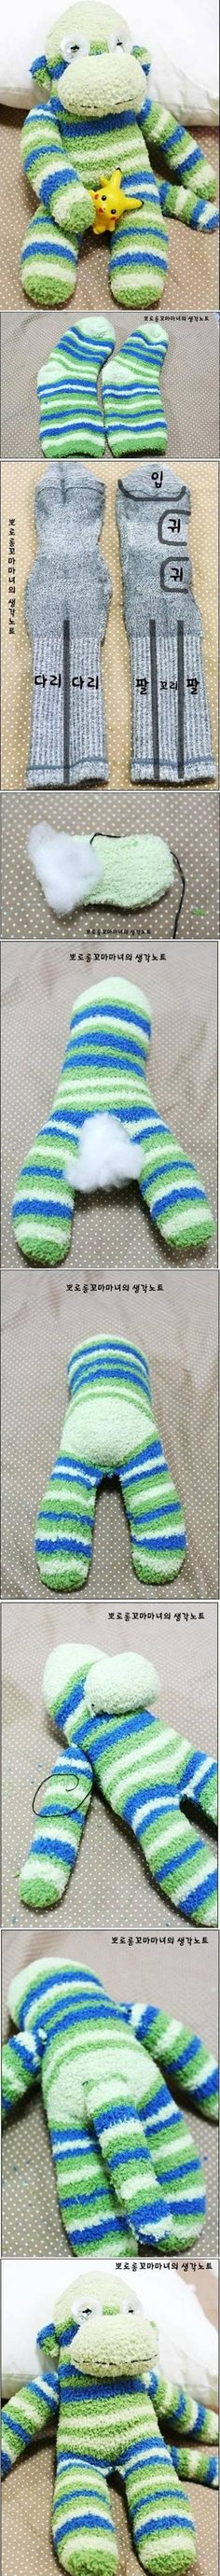 Crochet Patterns Slippers DIY Sock Monkey Terry DIY Sock Monkey Terry by diyforever Sock Crafts, Cute Crafts, Fabric Crafts, Diy Crafts, Sewing Toys, Sewing Crafts, Sewing Projects, Diy Projects, Project Ideas